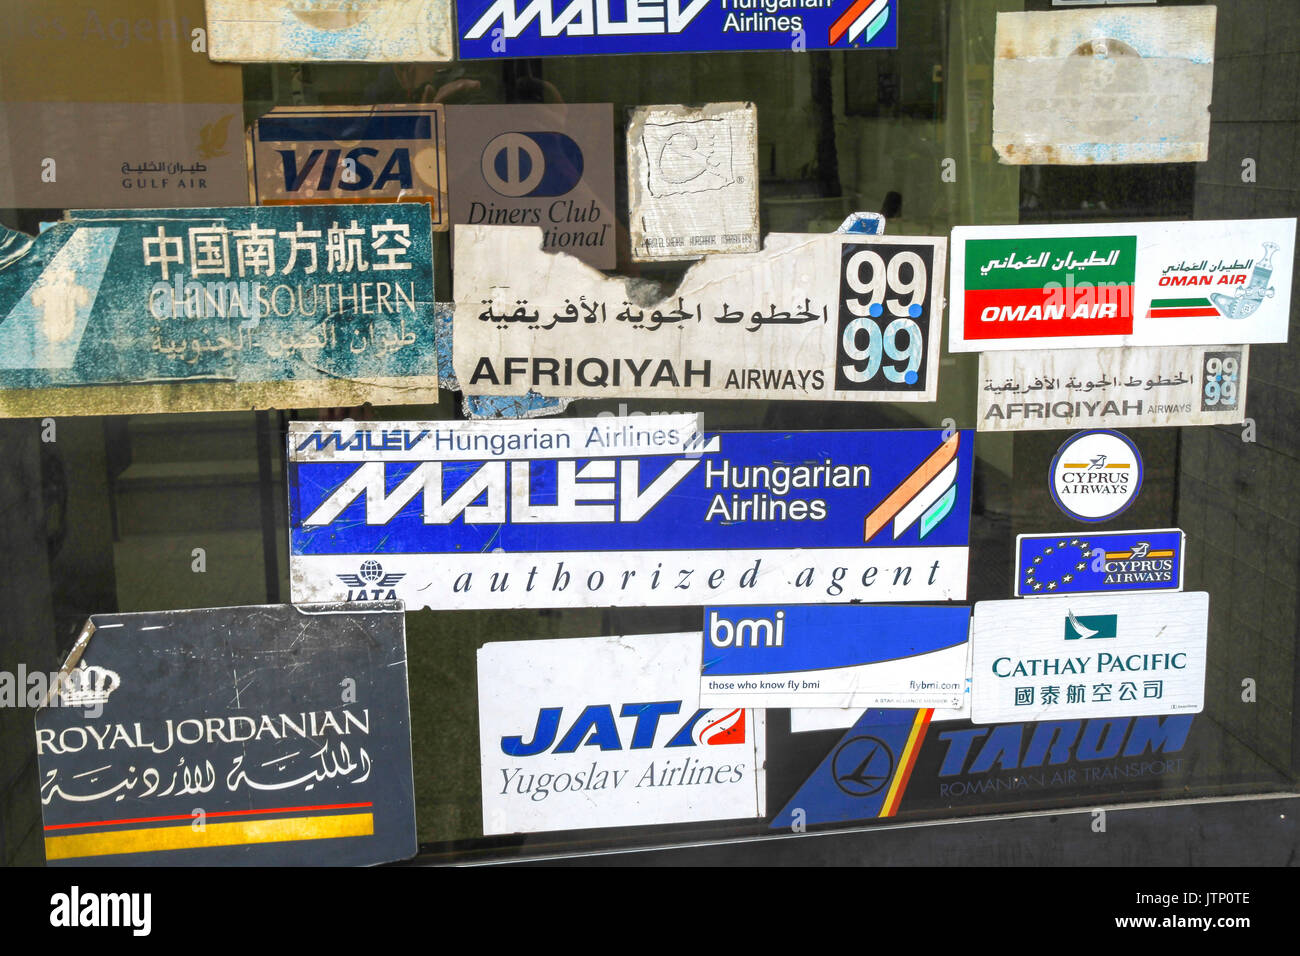 Airline logos including historic now non existing Yugoslav Airlines (JAT) through the window of travel agency in downtown Cairo - Stock Image